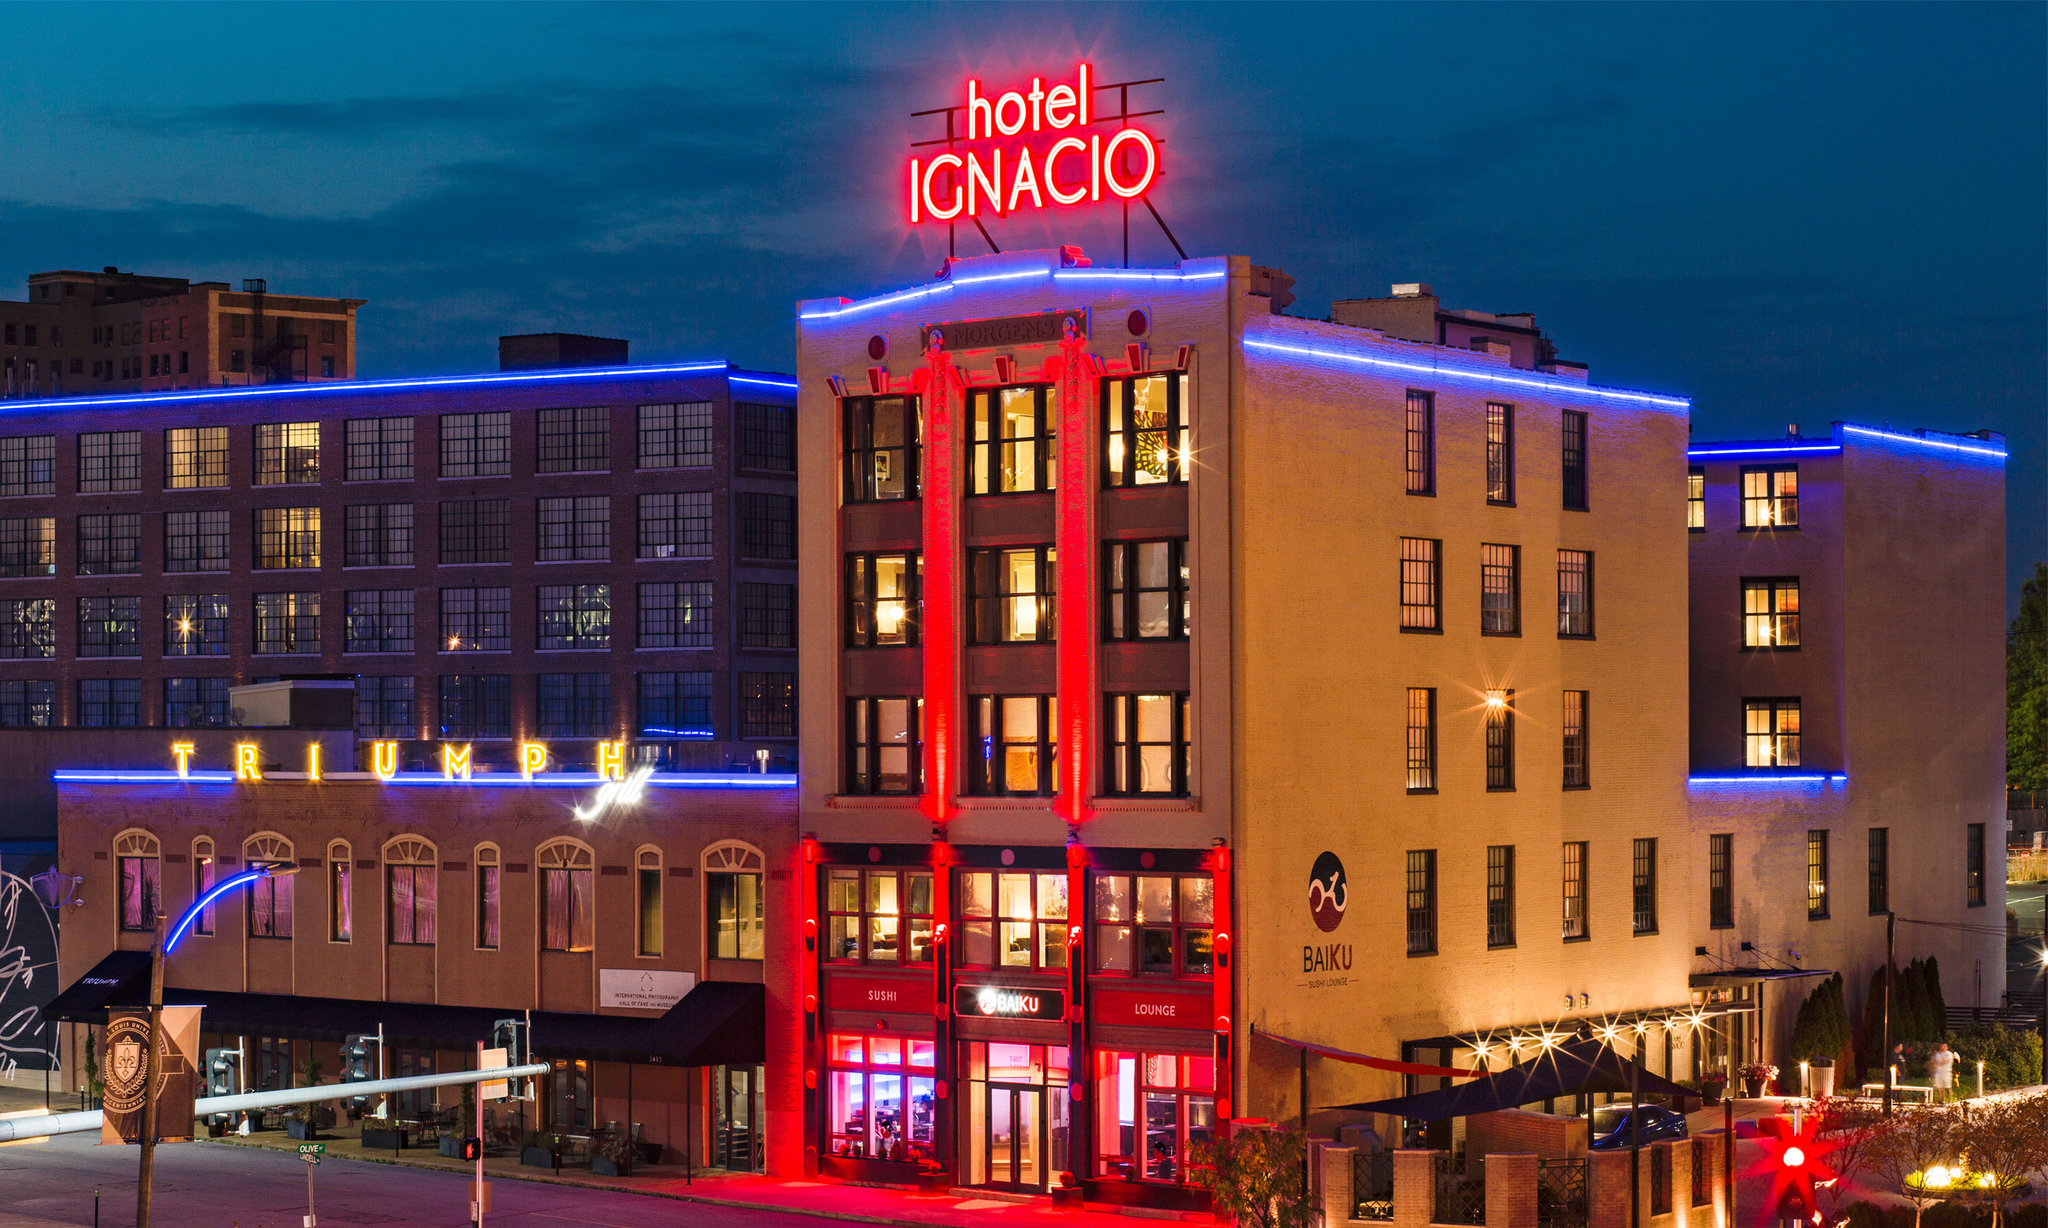 St Louis Hotels >> Boutique Hotel In Saint Louis Missouri Hotel Ignacio